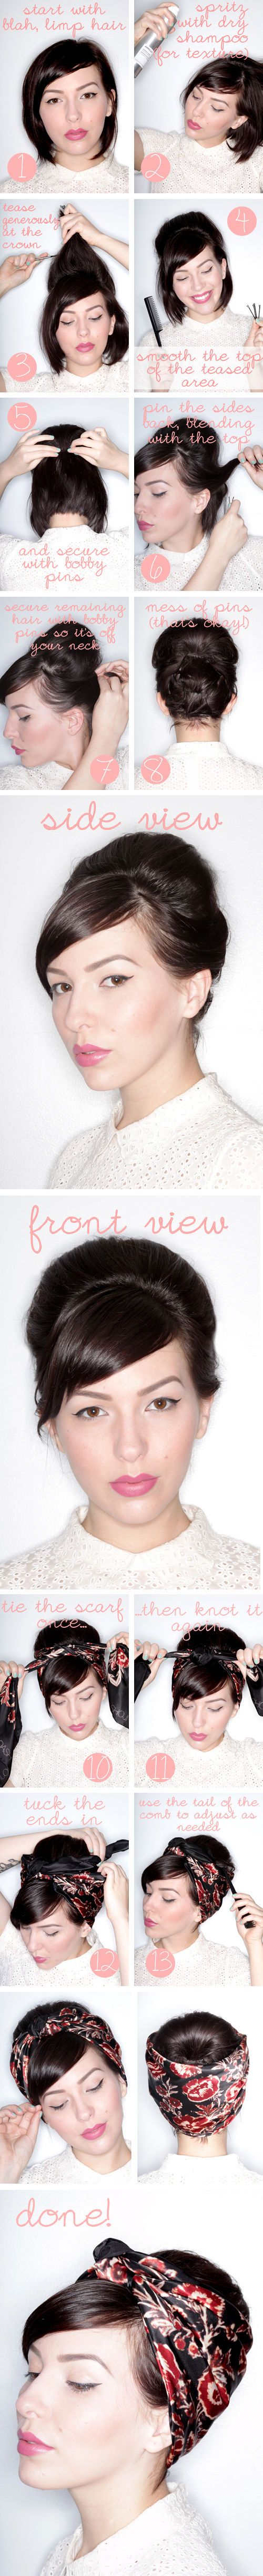 Faux Updo For Short Hair long hair updo faux diy hair hairstyles short hair hair tutorials easy hairstyles